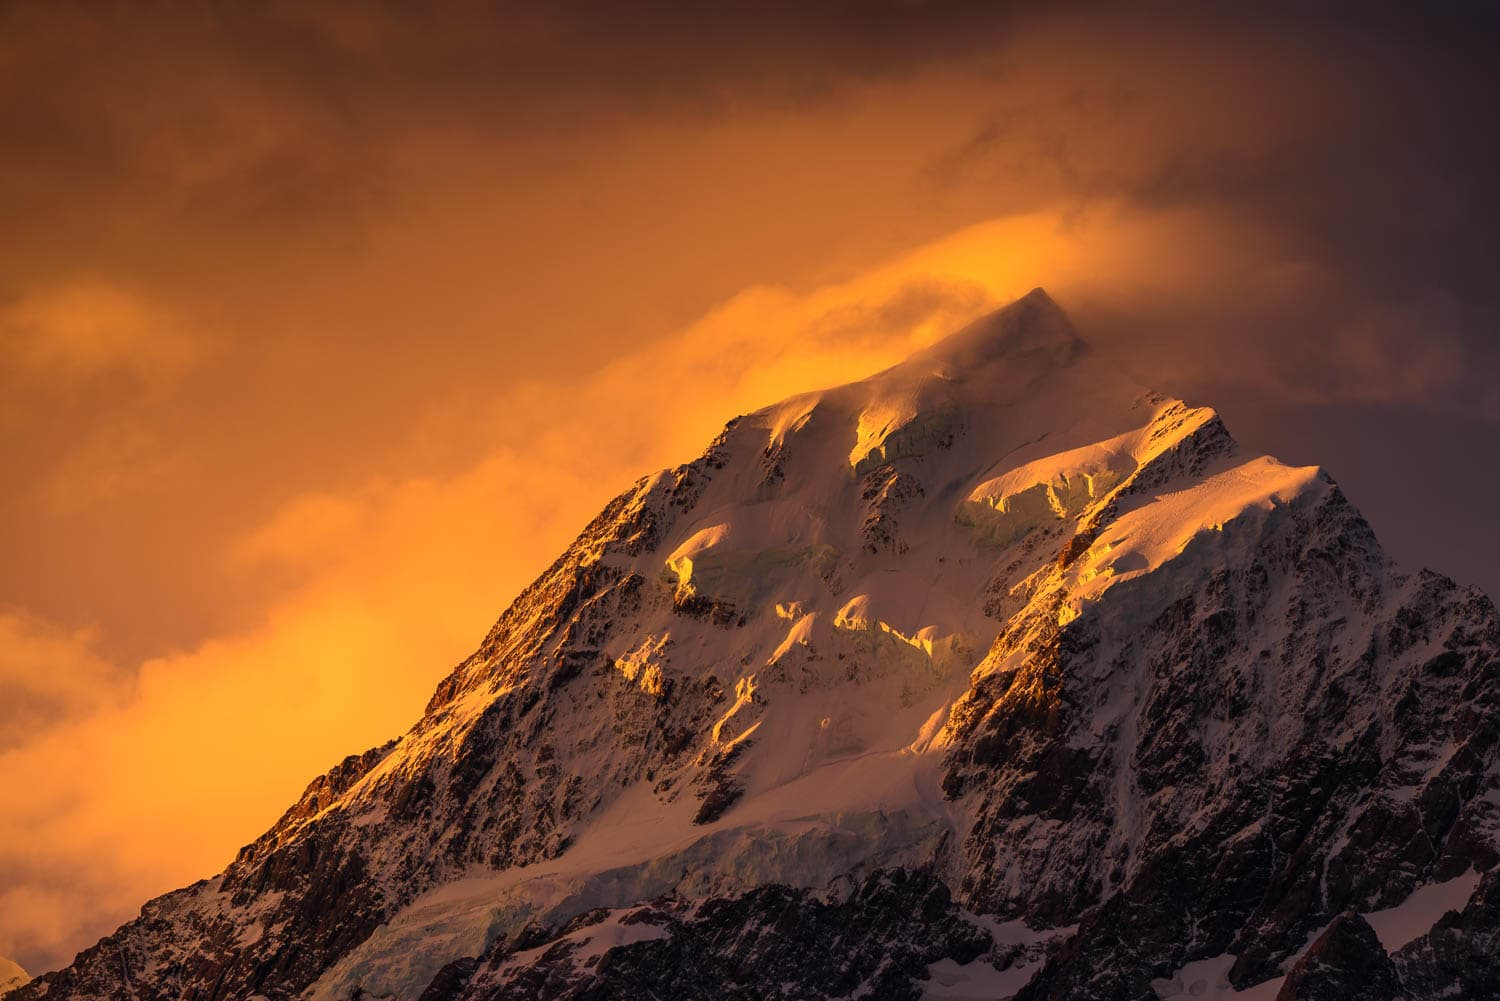 Mount Cook's snowy peak under a fiery sunset sky